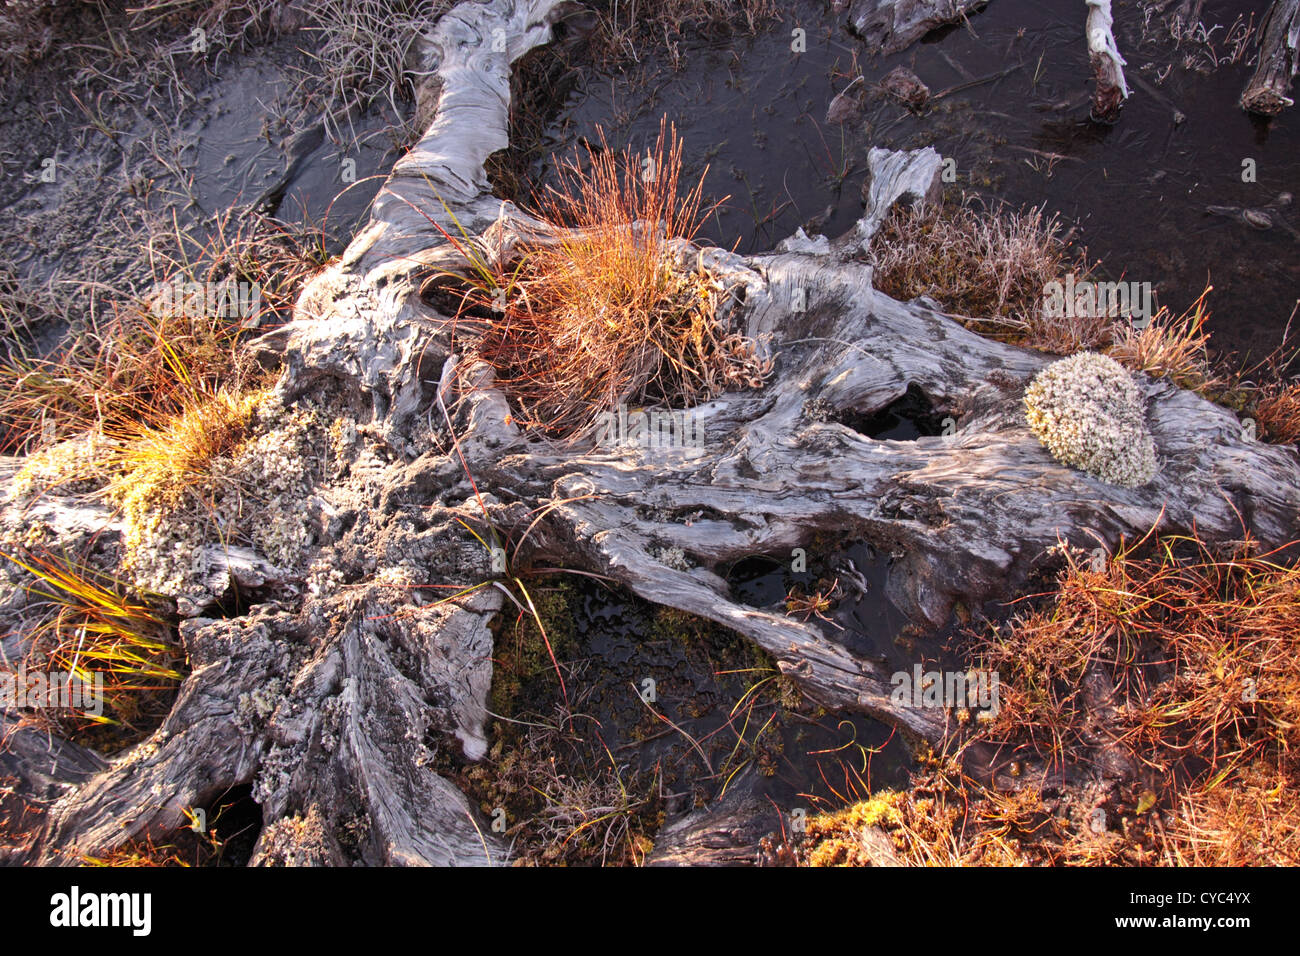 Old tree stump in peat bog with moss and grasses - Stock Image